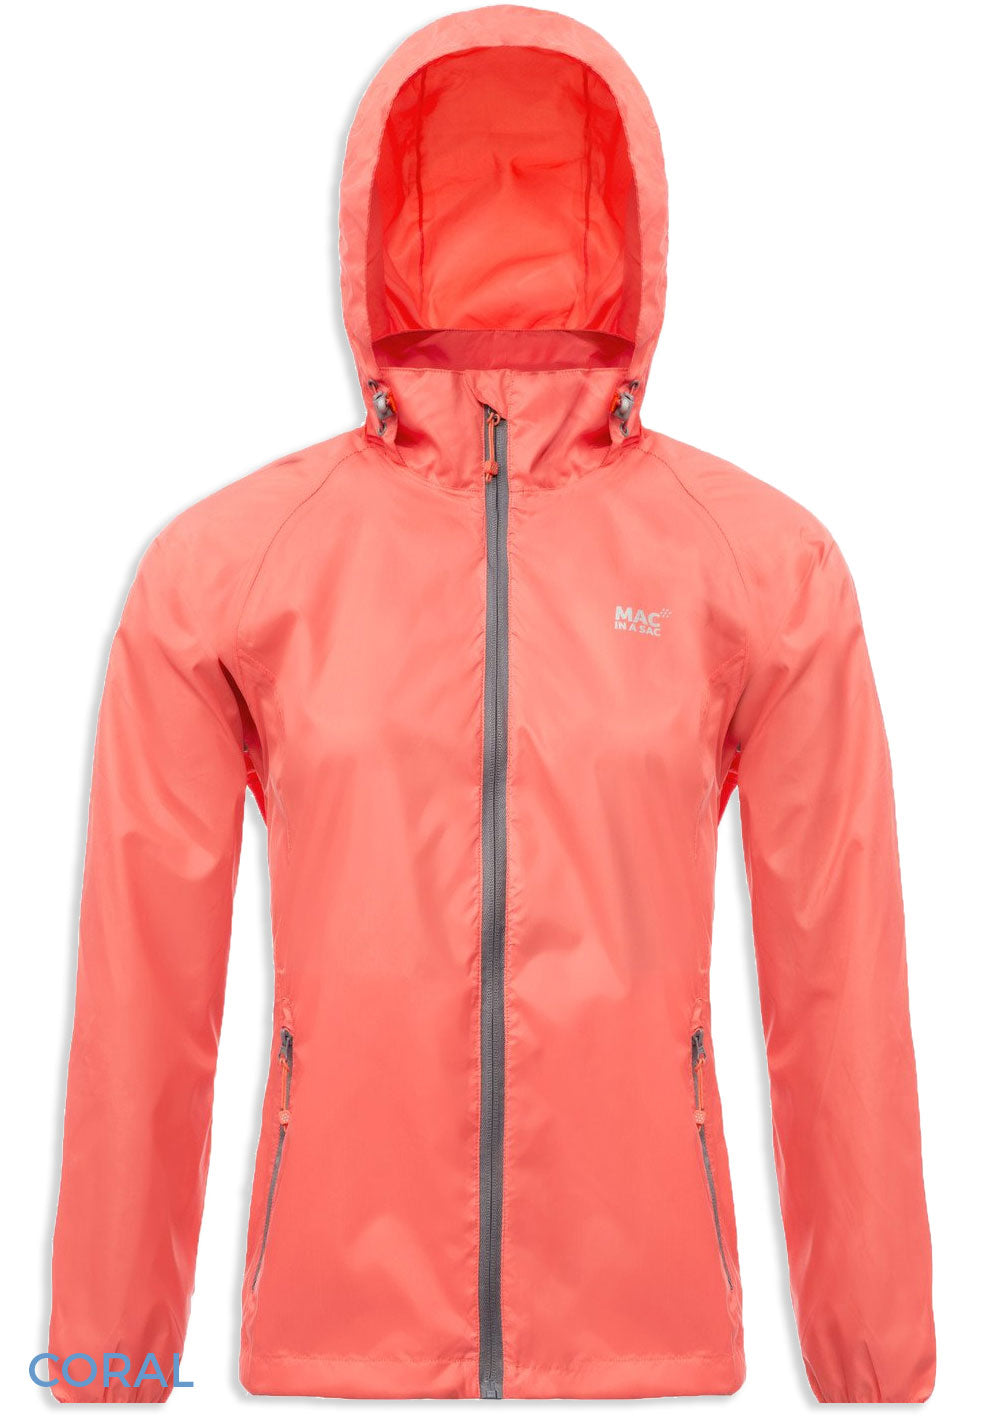 Hooded Coral Packaway Waterproof Jacket by Lighthouse